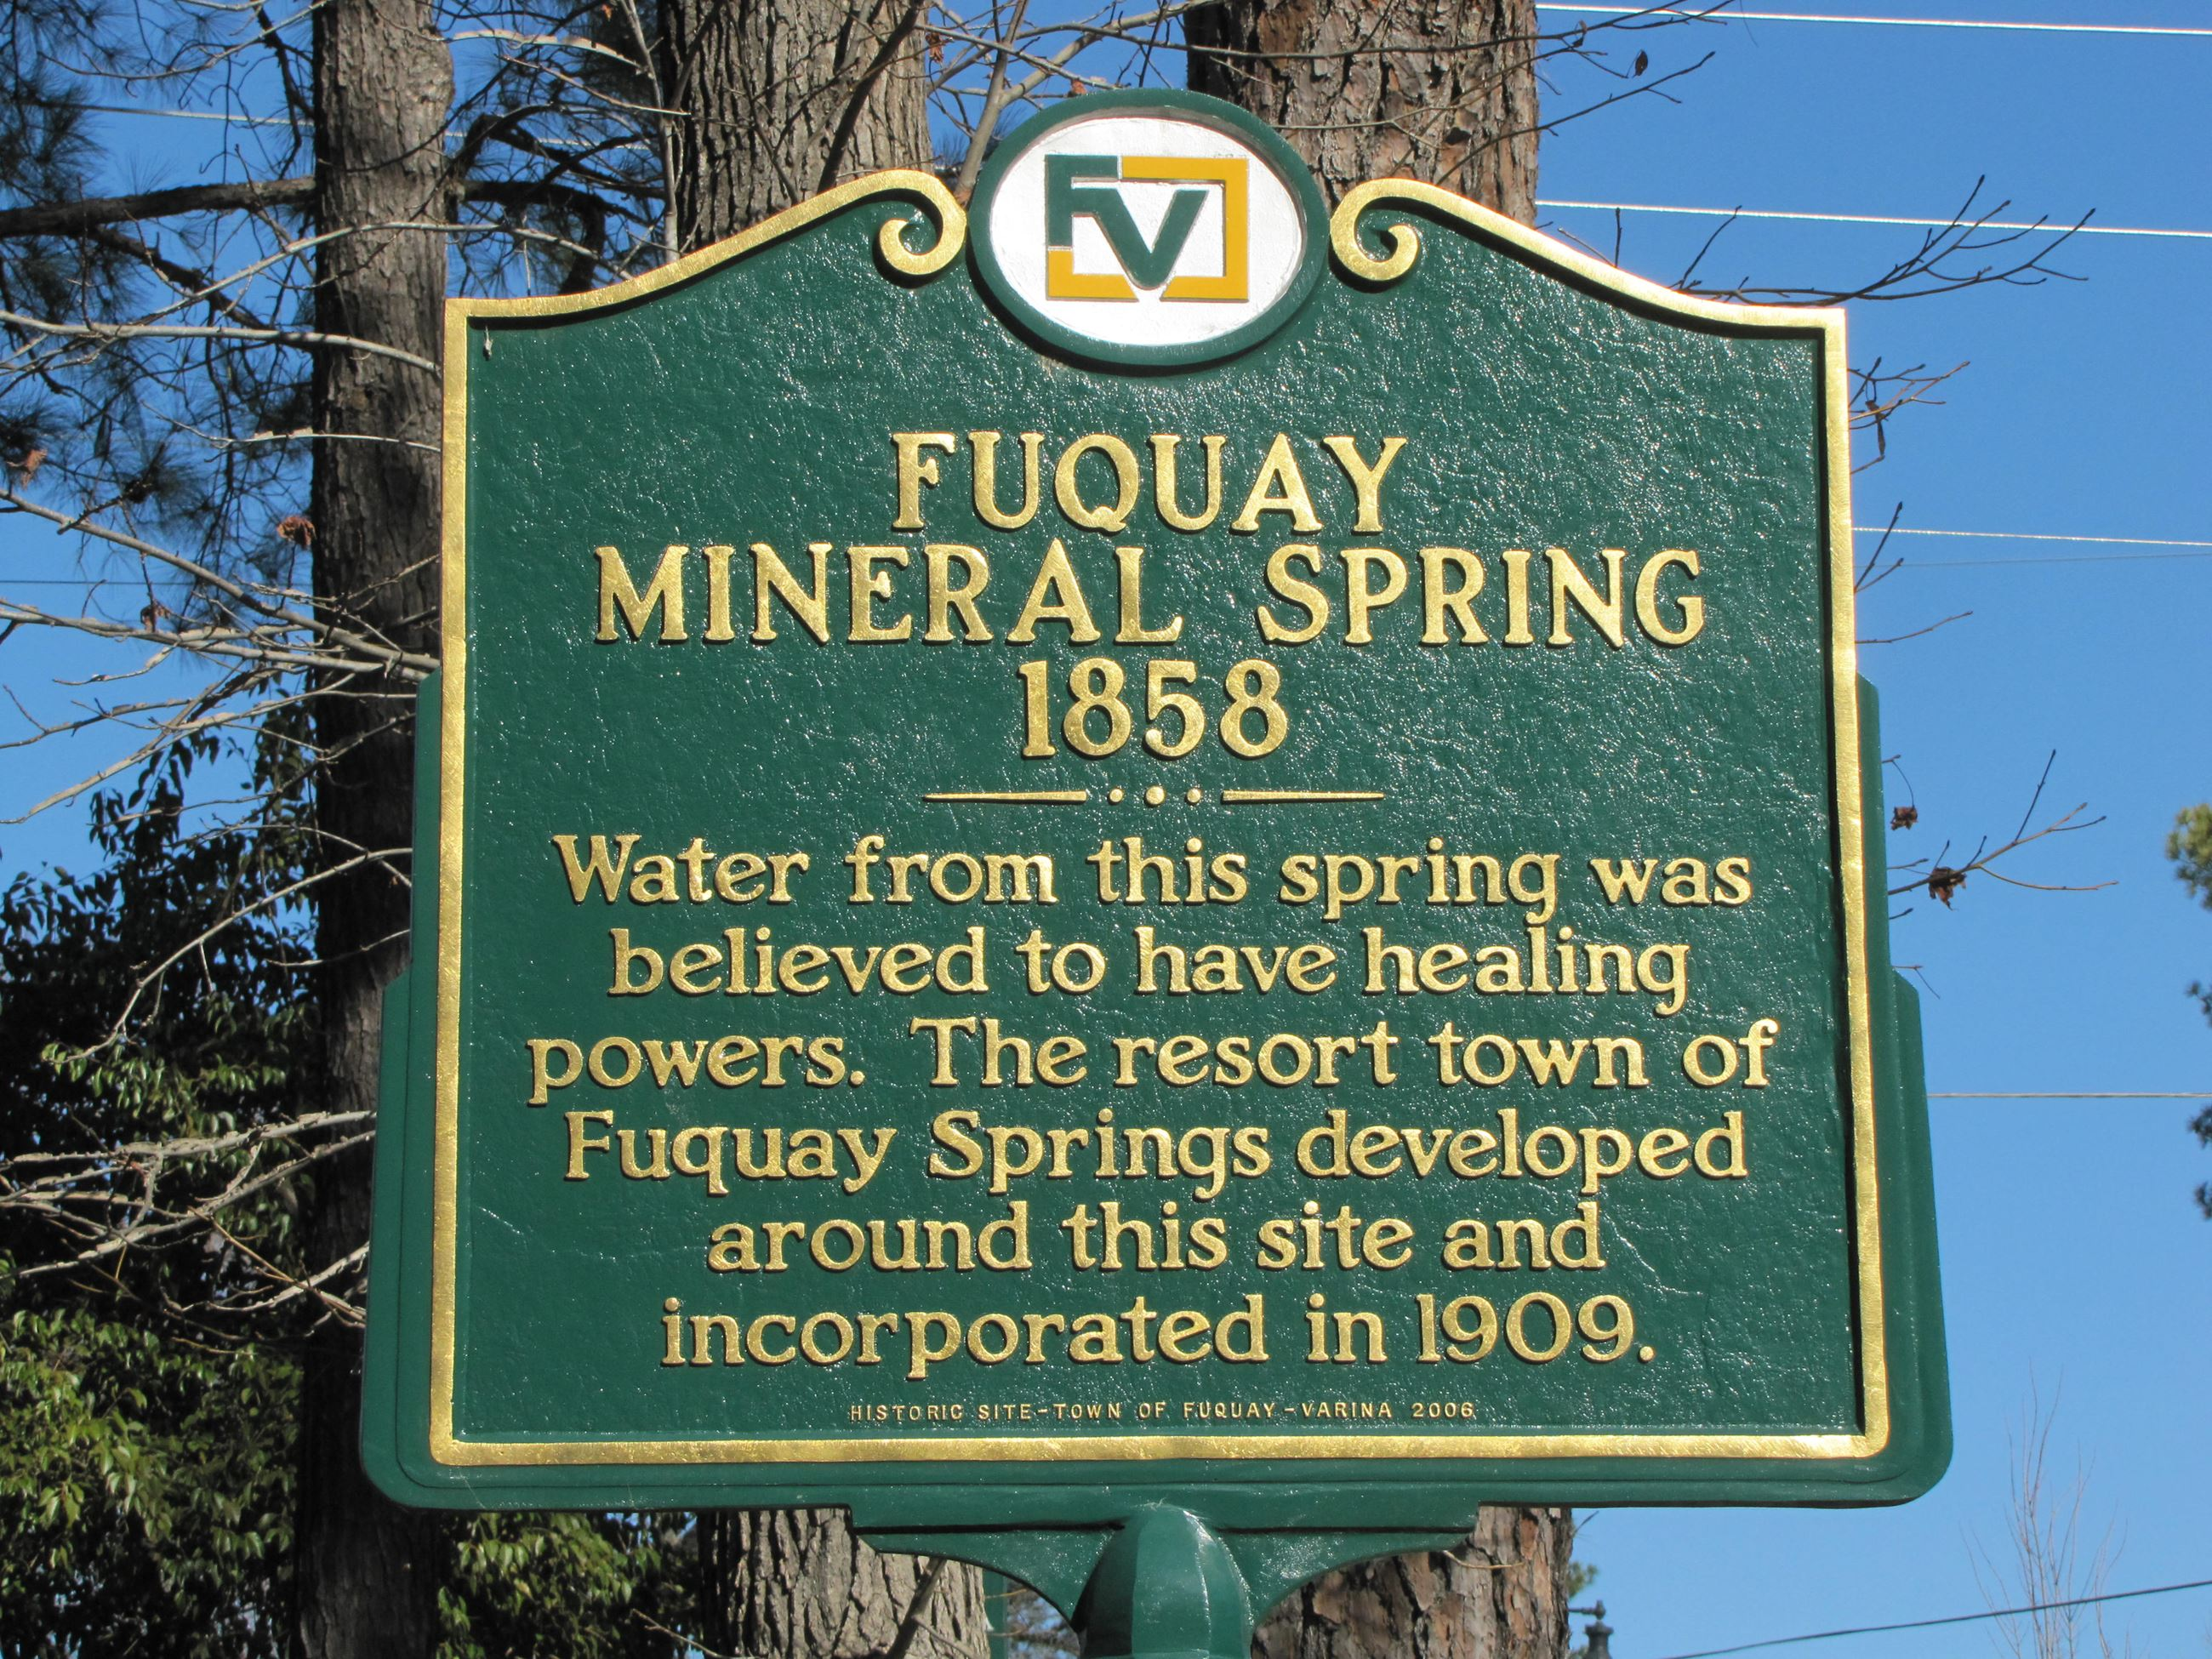 Fuquay Mineral Spring  historical marker